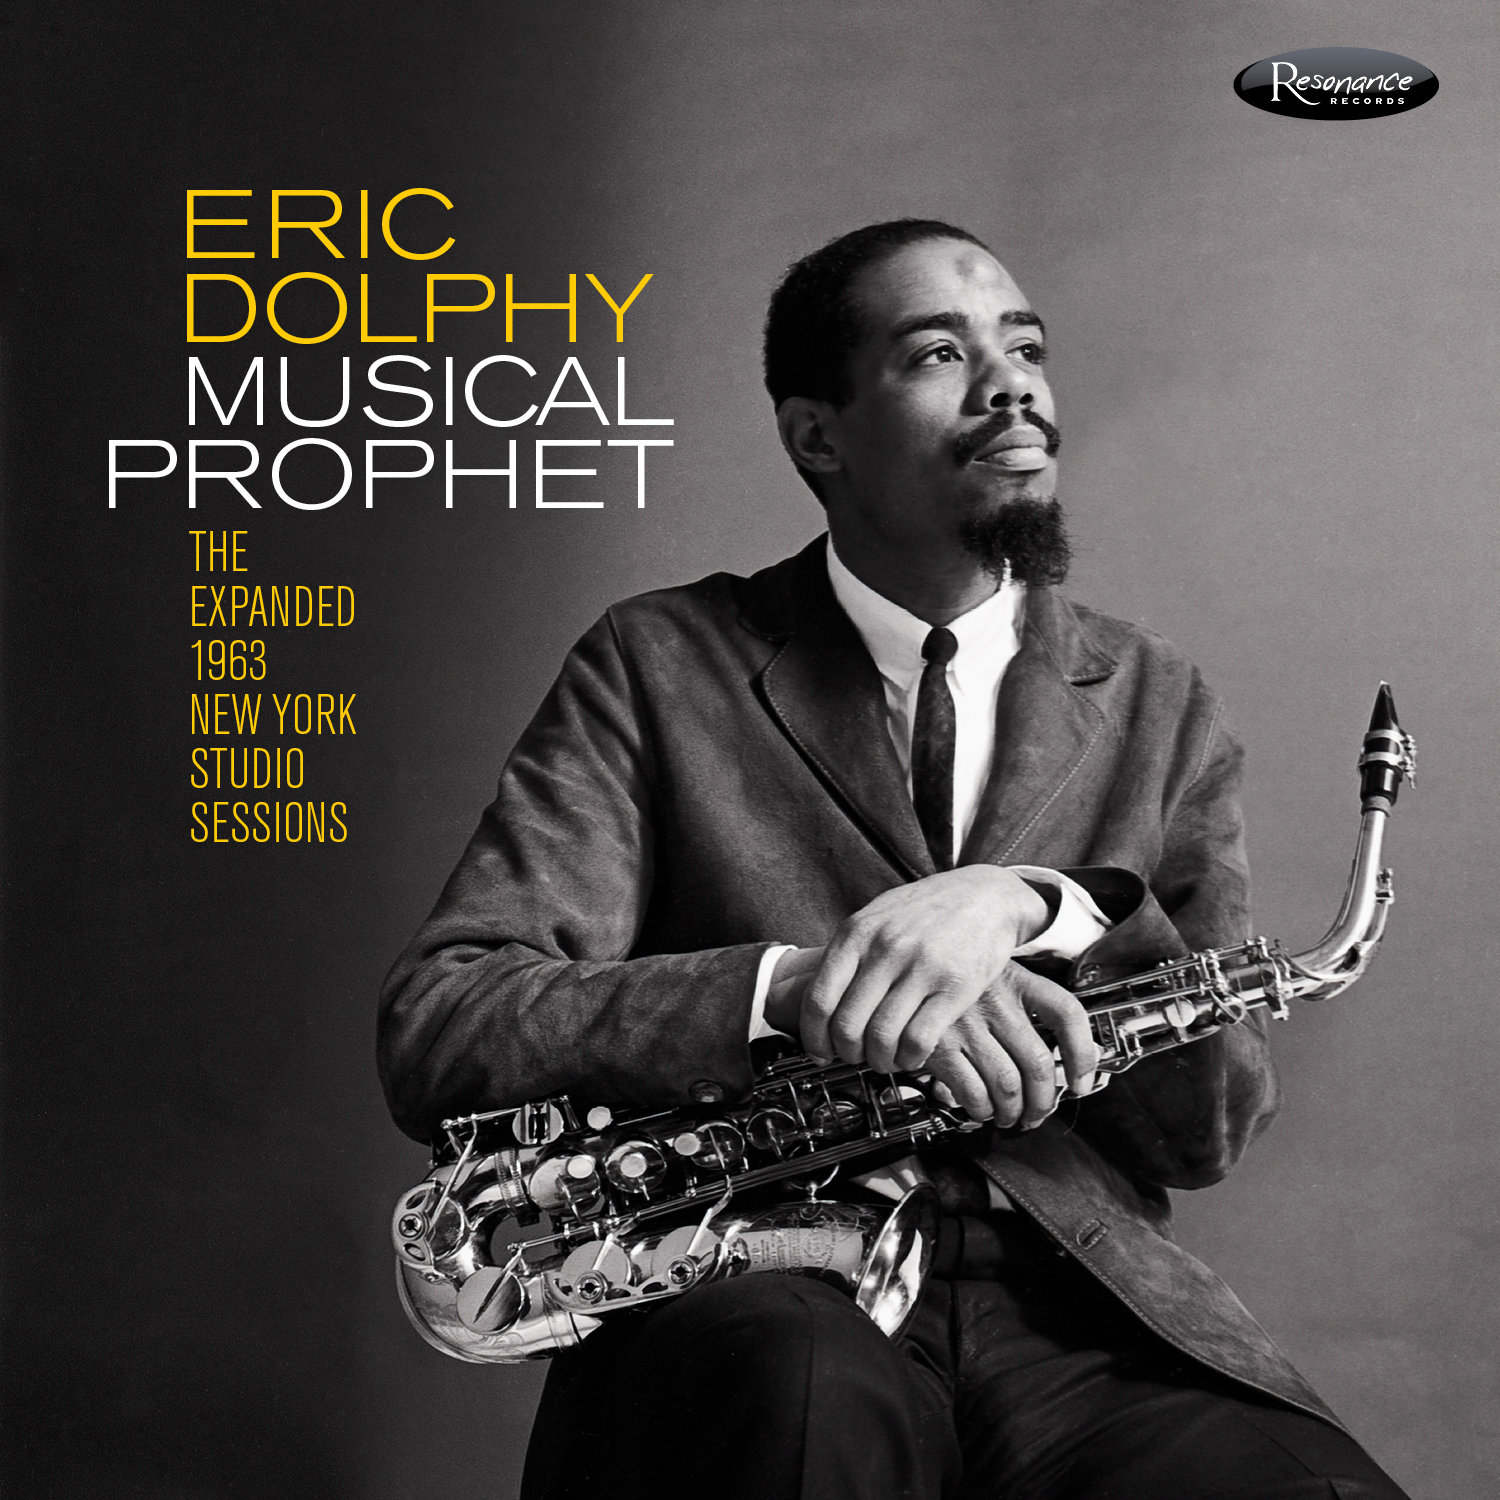 Se publica el disco de Eric Dolphy Musical Prophet: The Expanded 1963 New York Studio Sessions